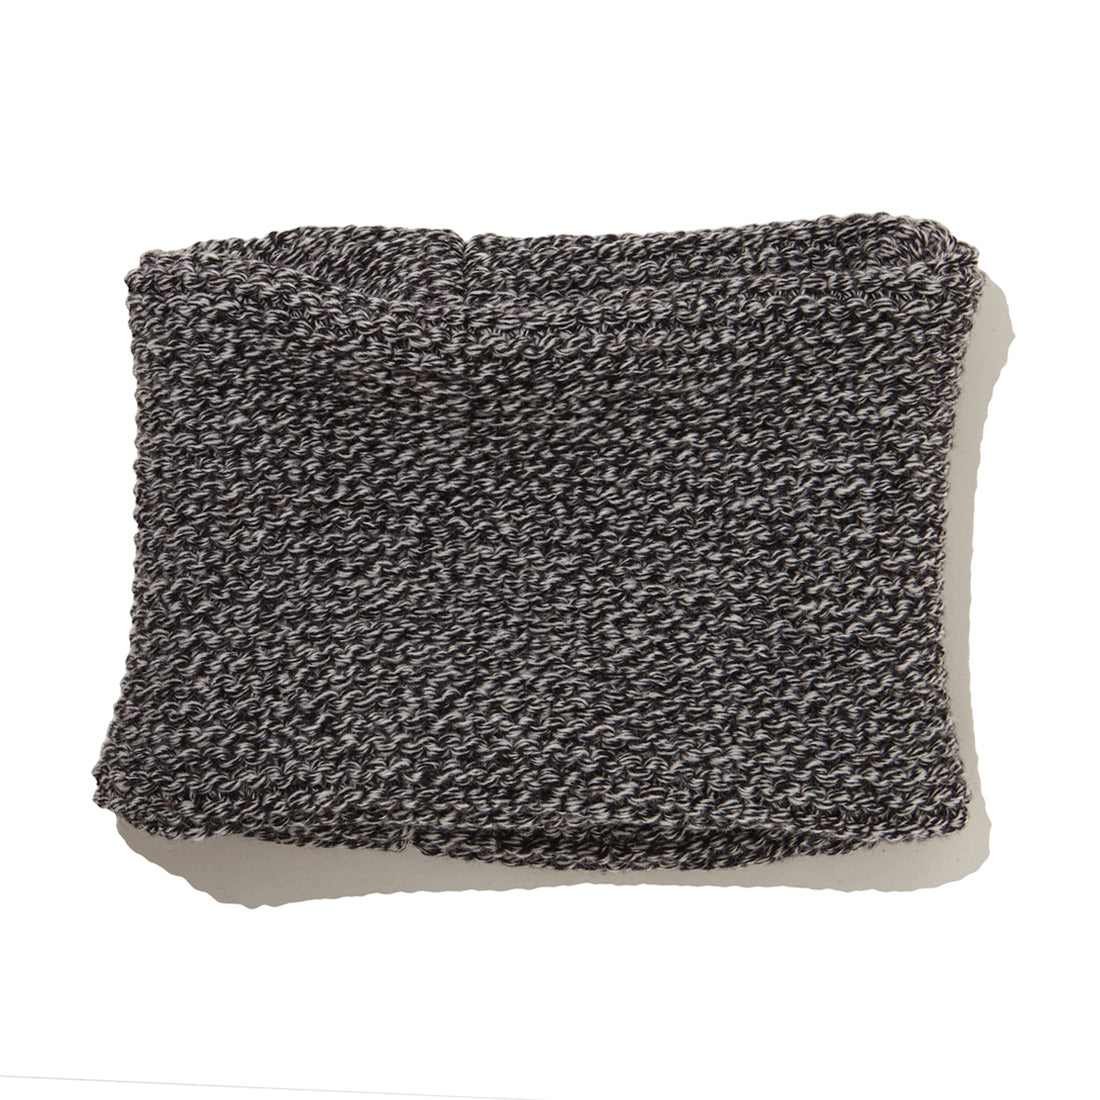 Neck Warmer / CHARCHOAL GRAY (19A-NSA-AC-06)